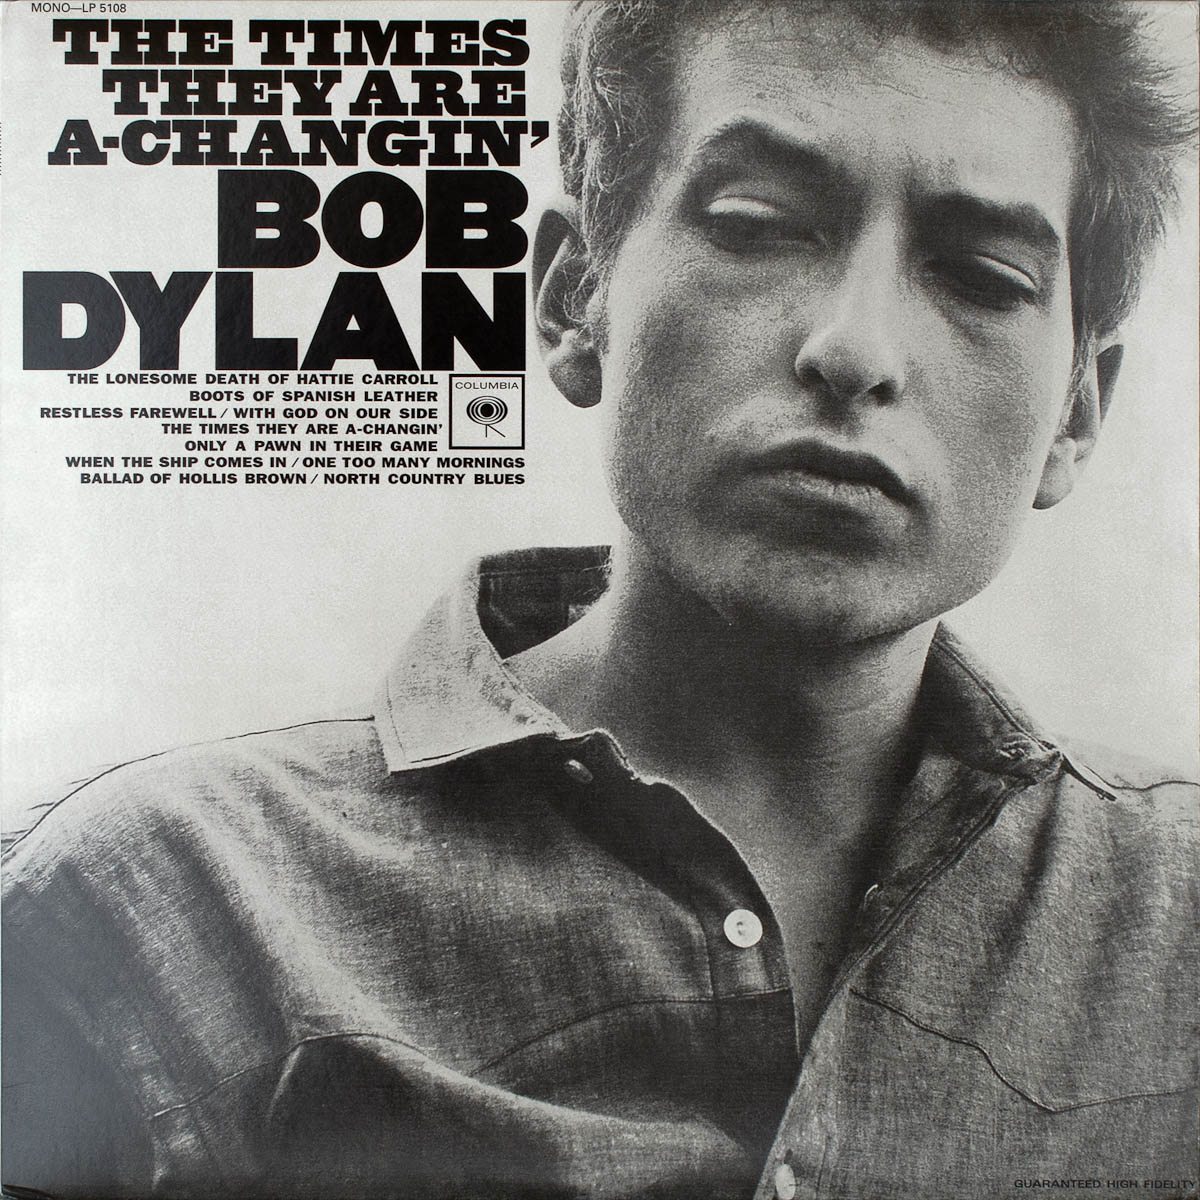 Pop culture politics and the social movements bob dylan and the dylanthetimestheyareachanginfront hexwebz Images